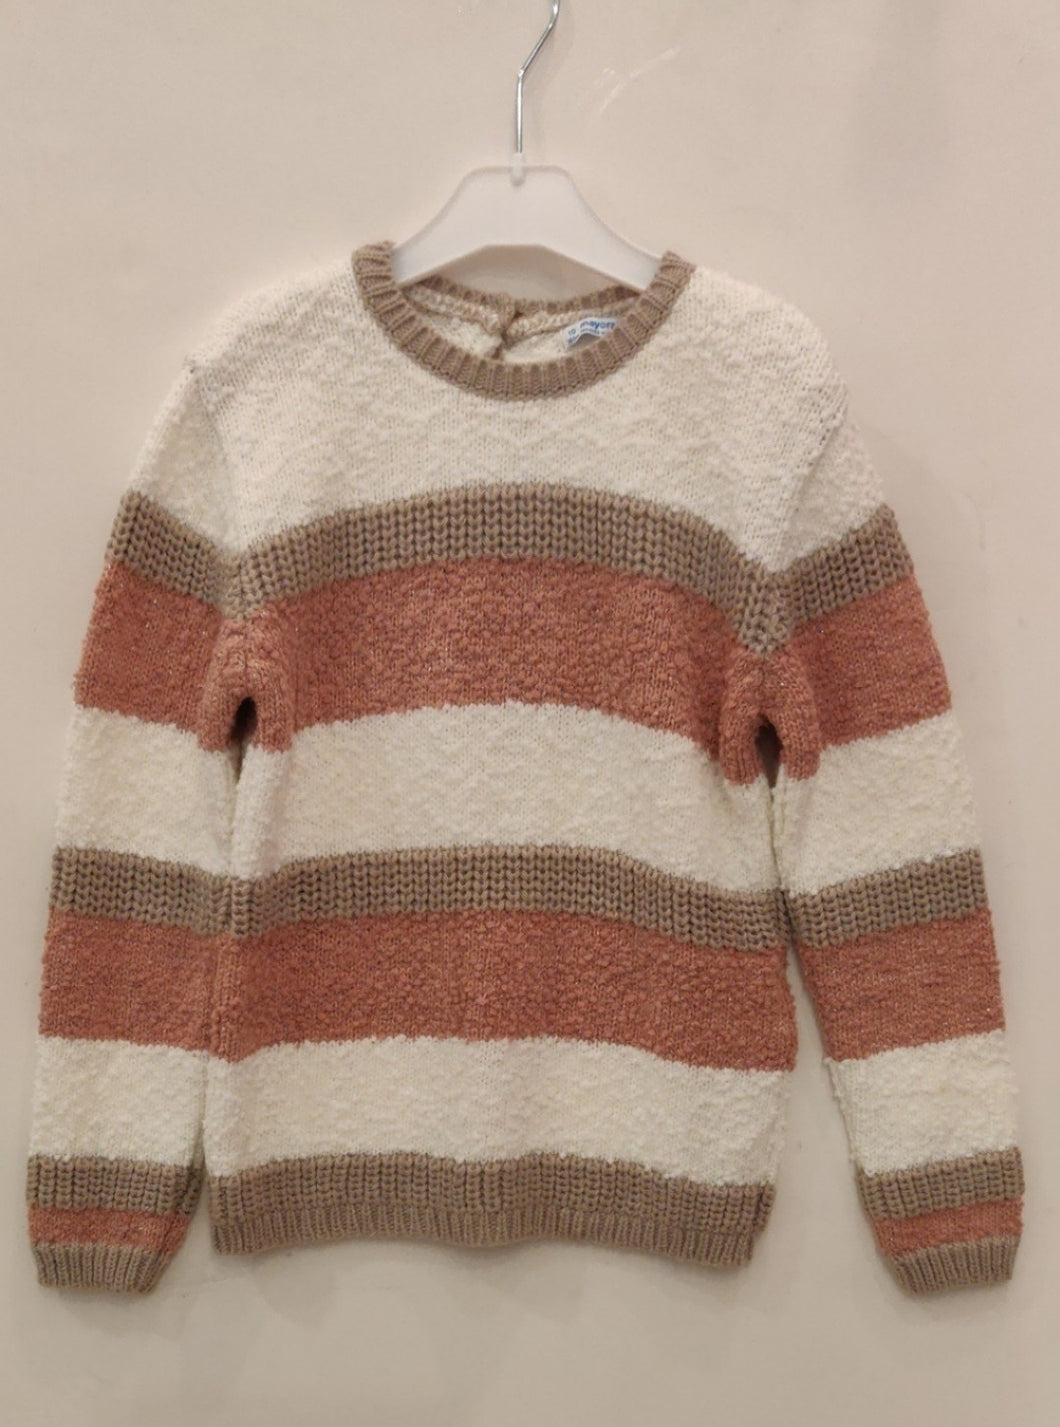 Pink, white and beige striped sweater